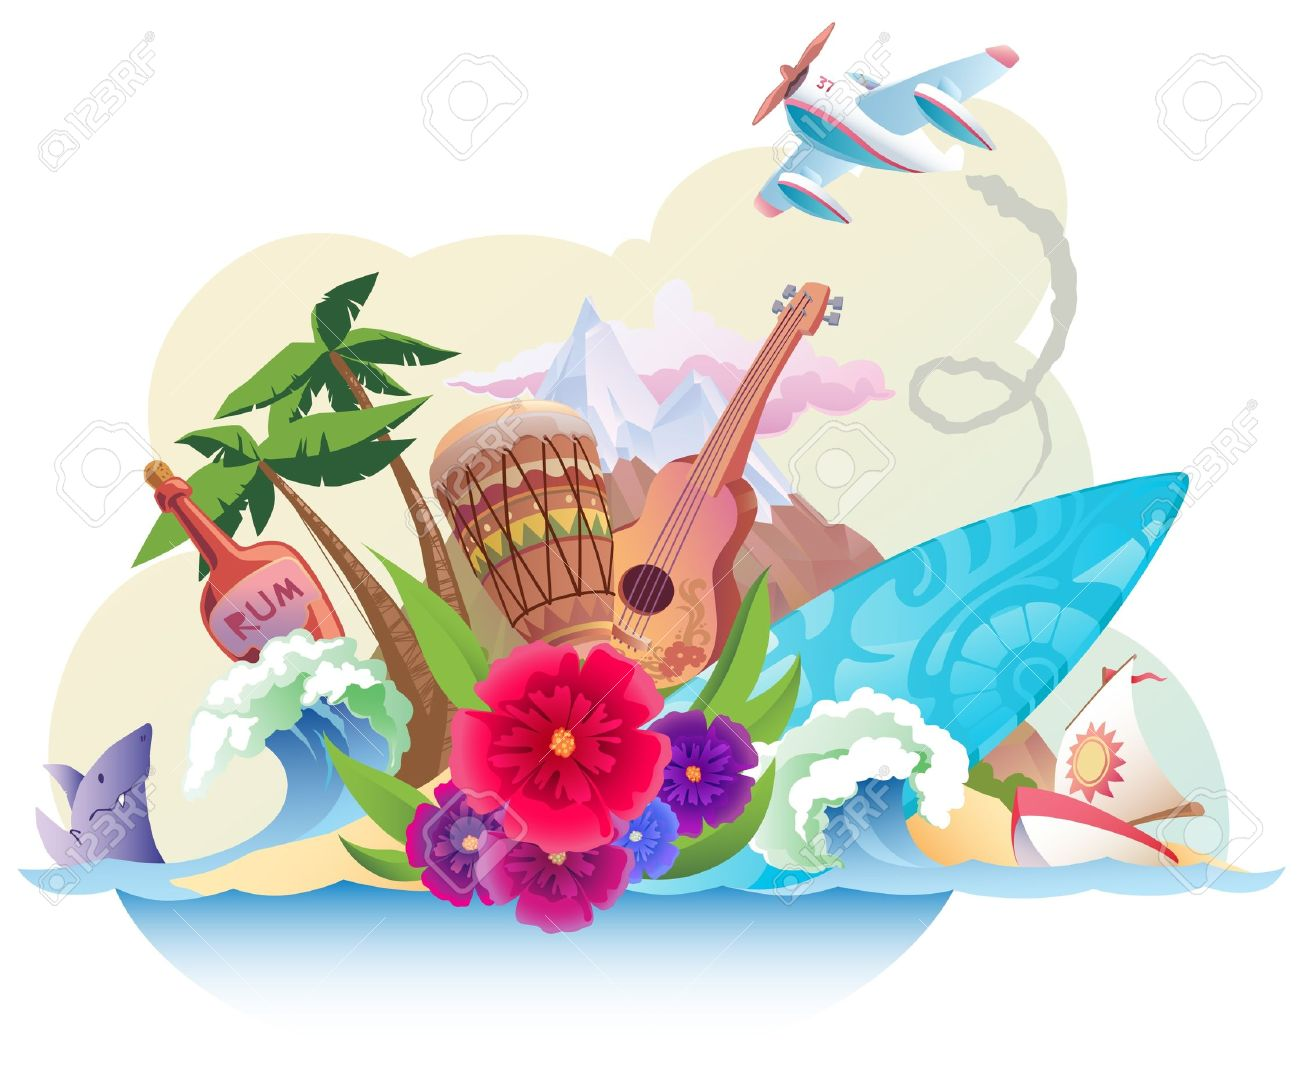 clipart caribbean islands - photo #17